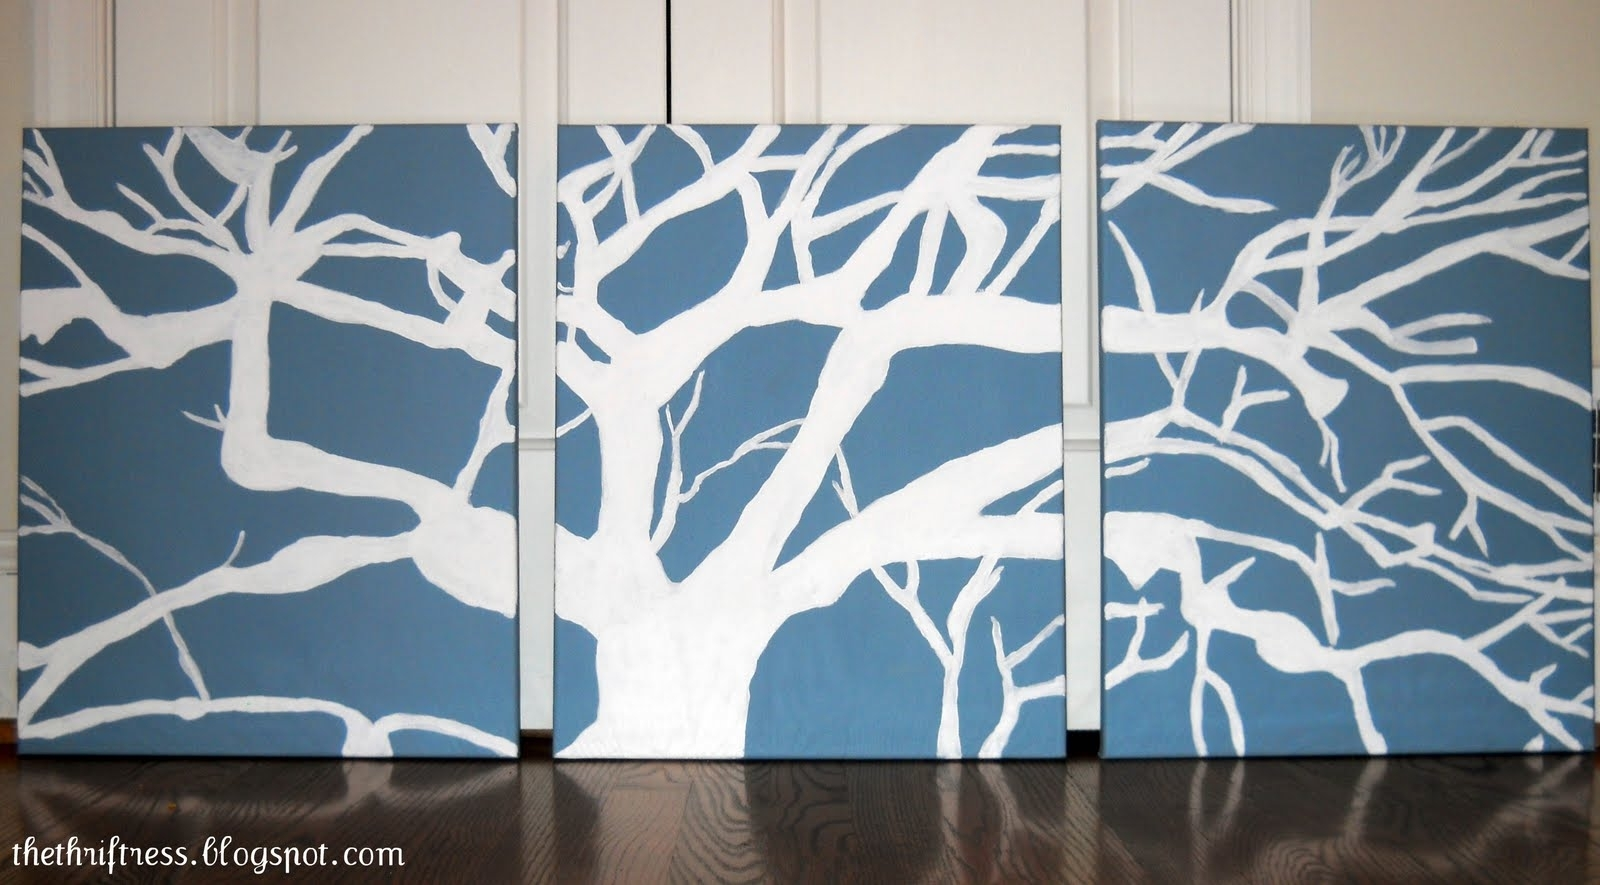 Diy Wall Art Stencils Paint Fabric – Dma Homes | #37854 Within Most Recent Creative Fabric Wall Art (View 9 of 15)